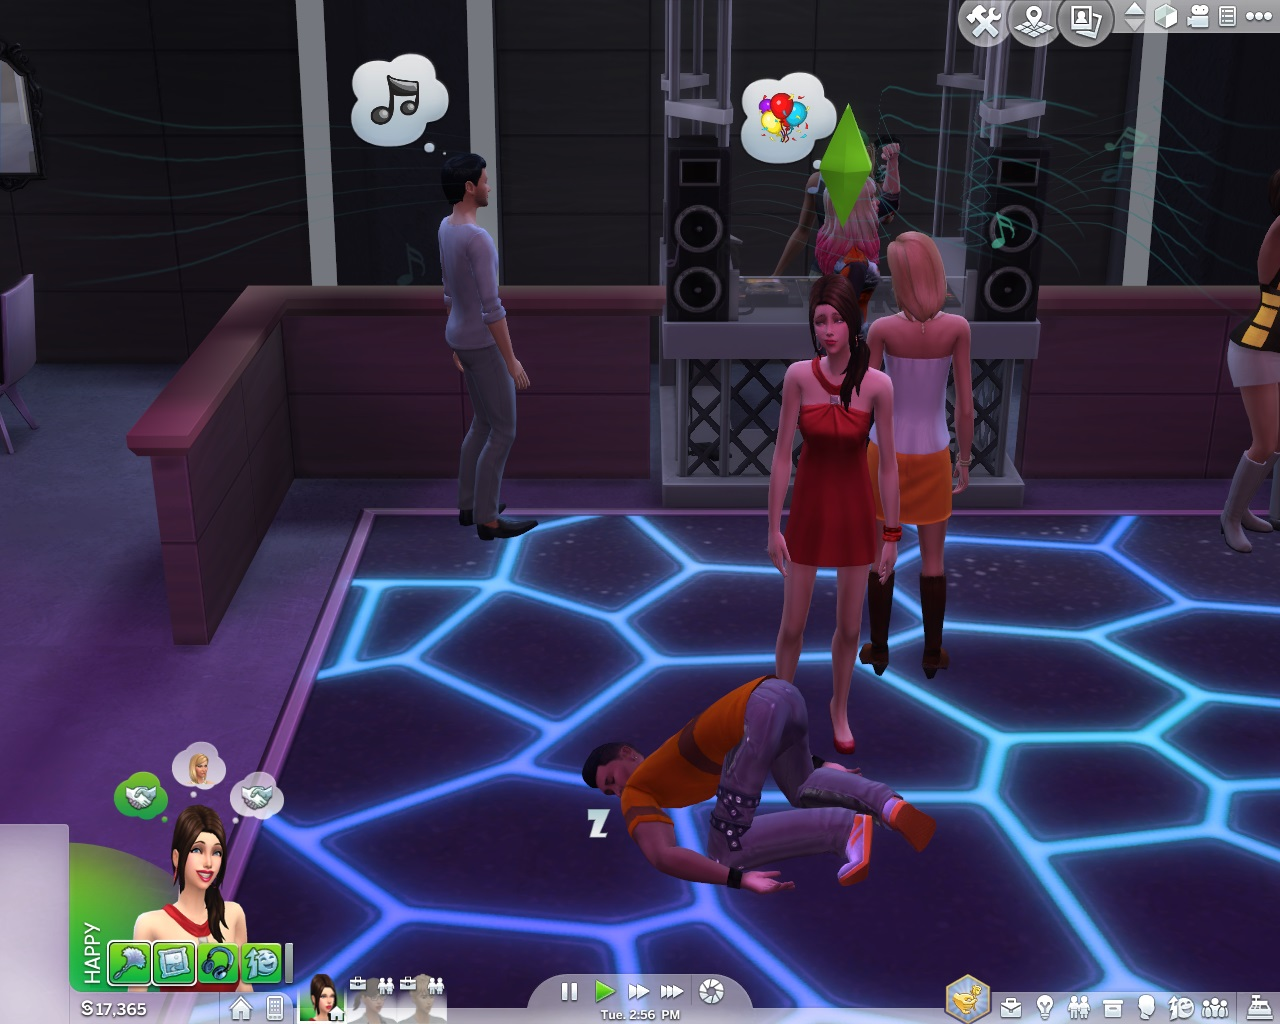 Mod The Sims - Sims 4 Occult Life State: Succubus